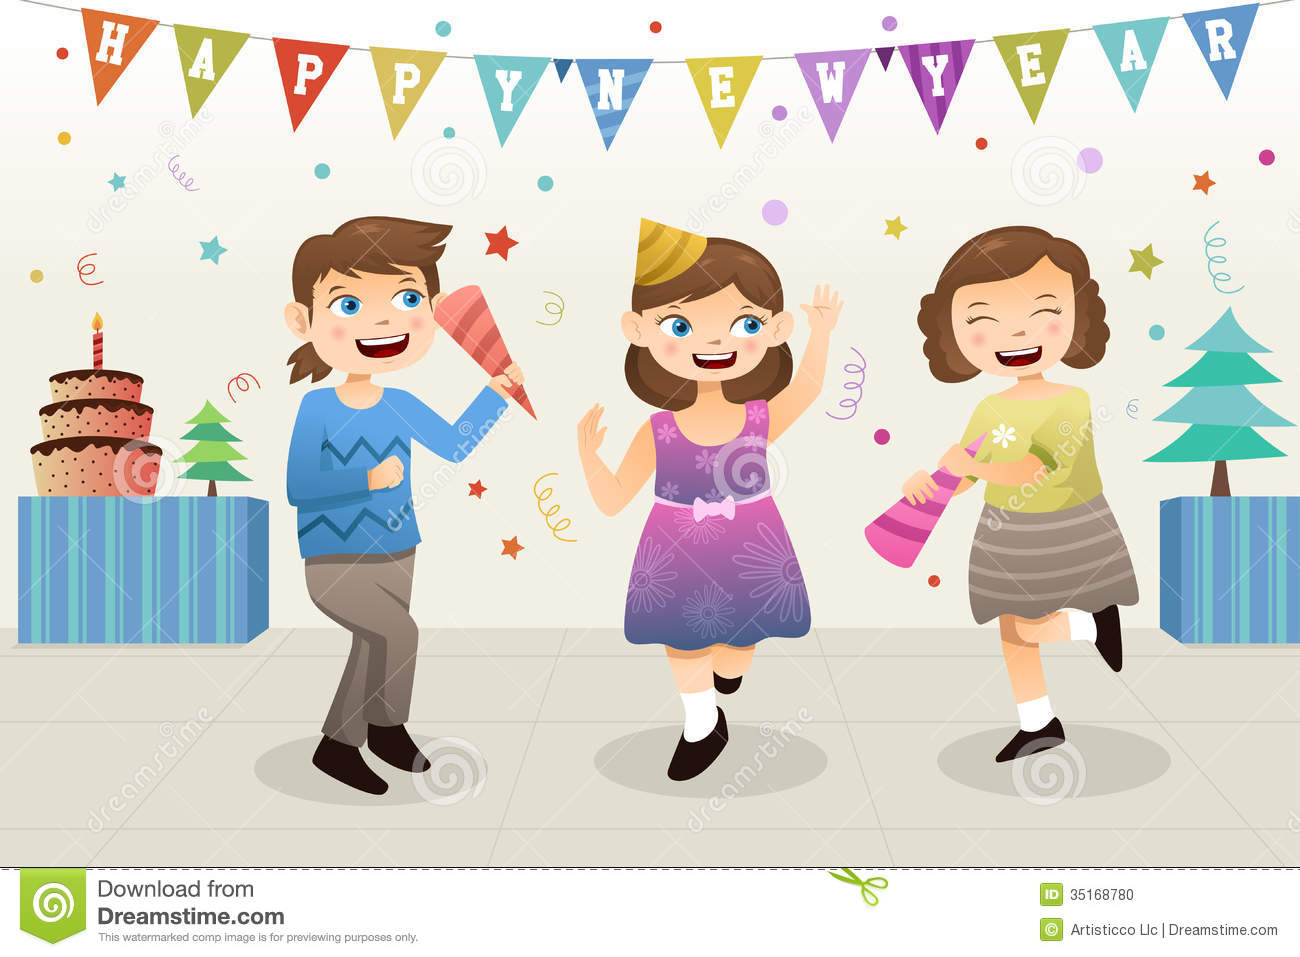 Festival clipart new year's Year New Happy new Party